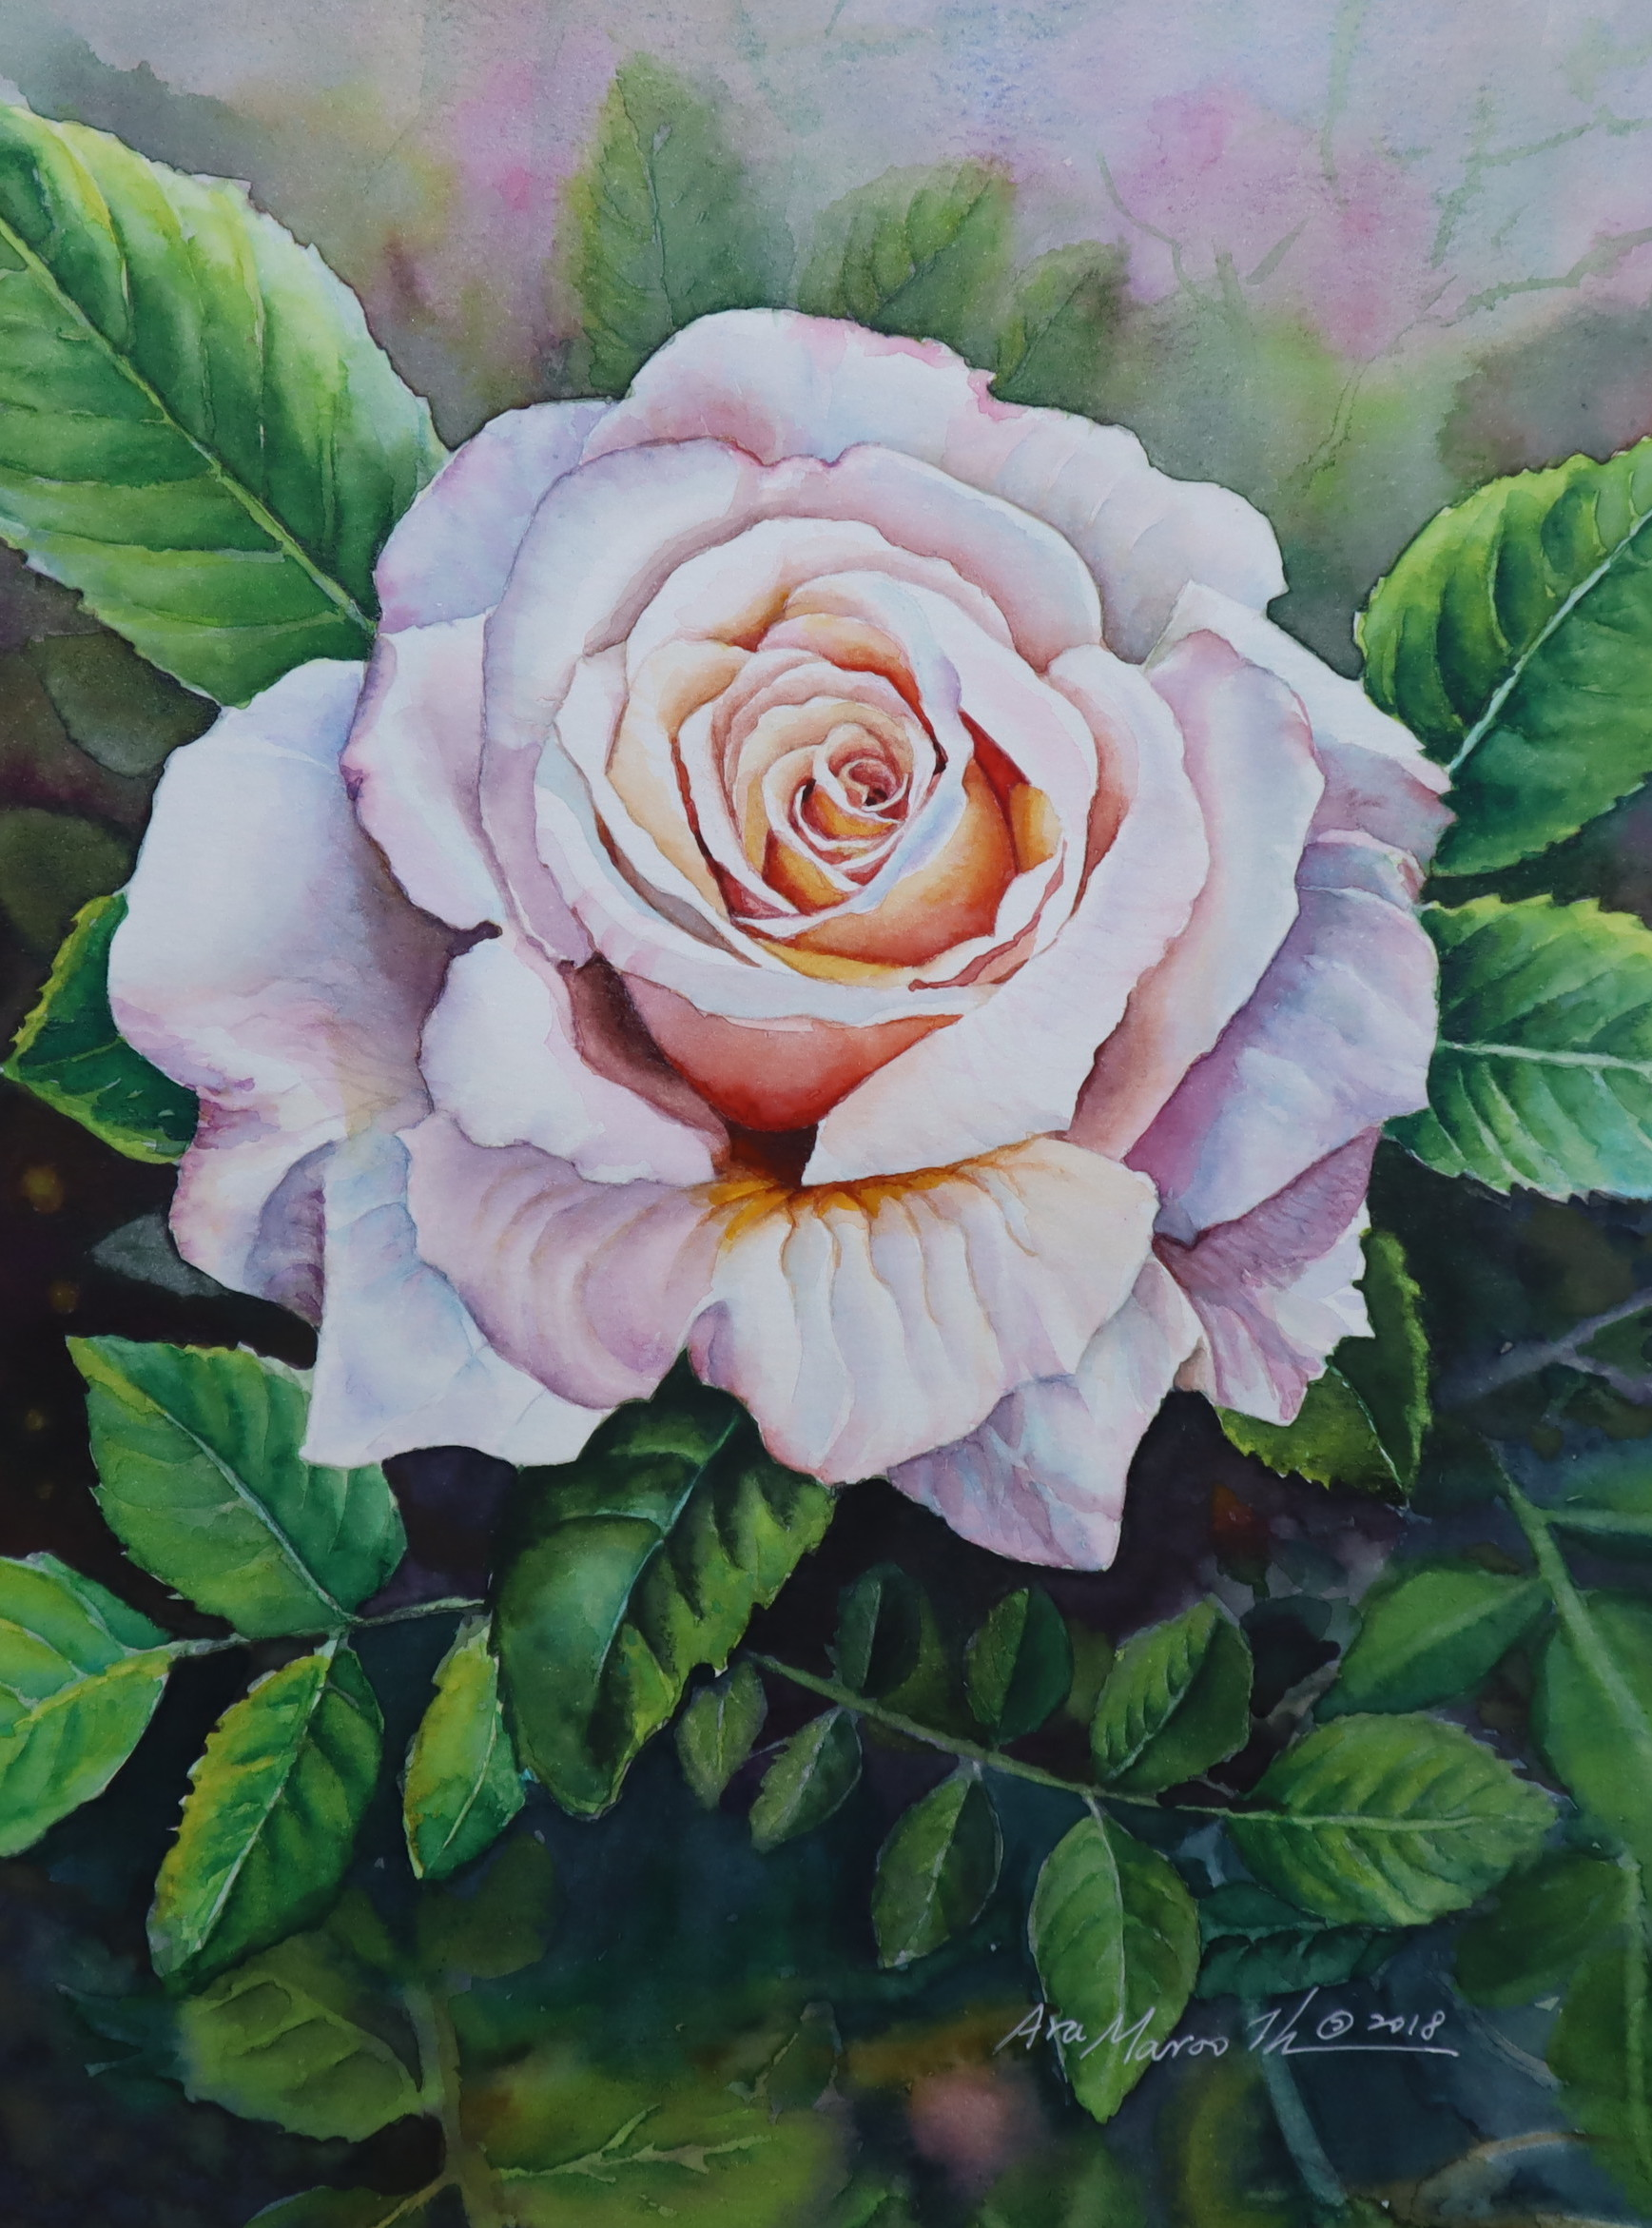 The Rose#1